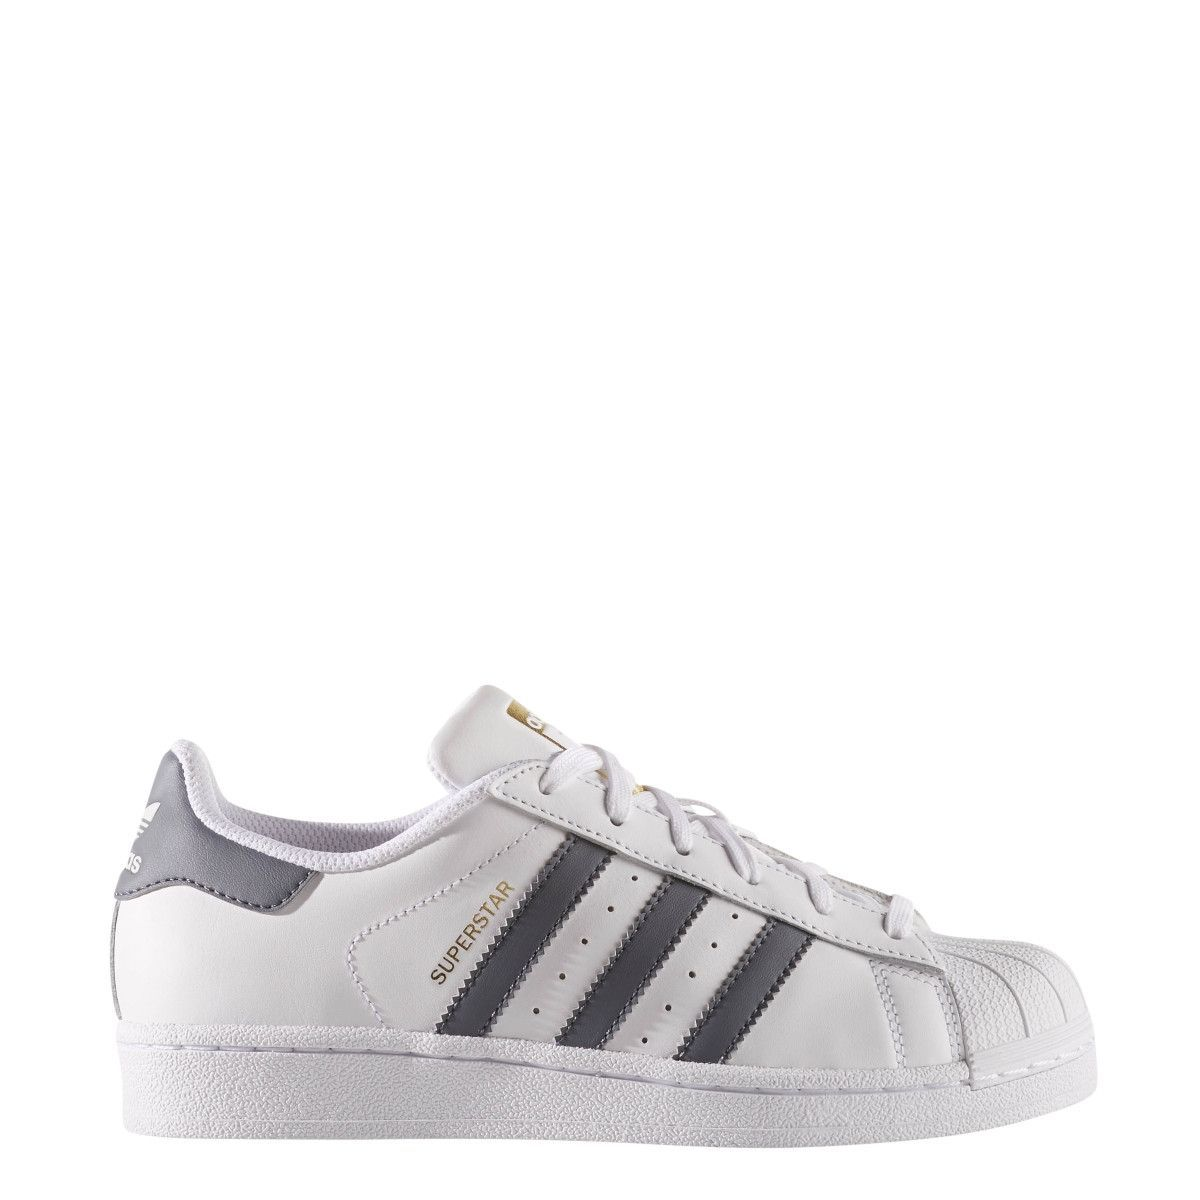 ADIDAS SUPERSTAR FOUNDATION KIDS SNEAKERS https://tumblr.com/ZmD_Wd2QAw3DW